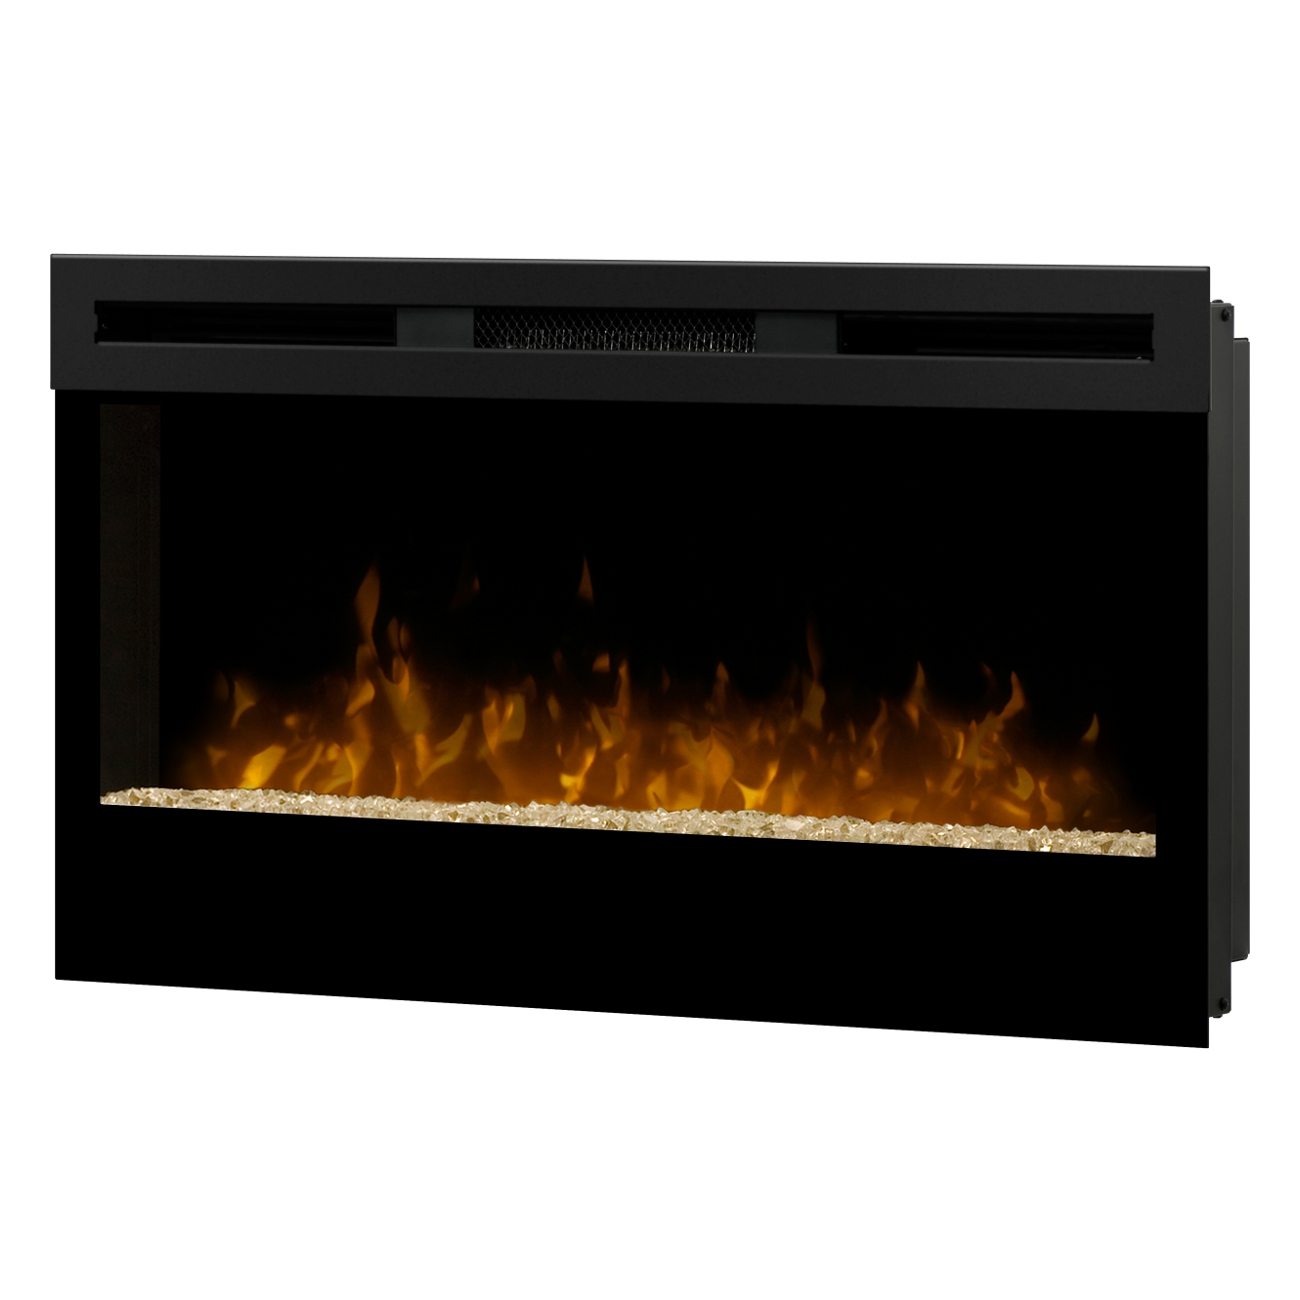 Dimplex 34 Blf34 Wickson Electric Fireplace Wall Mount Electric Fireplaces